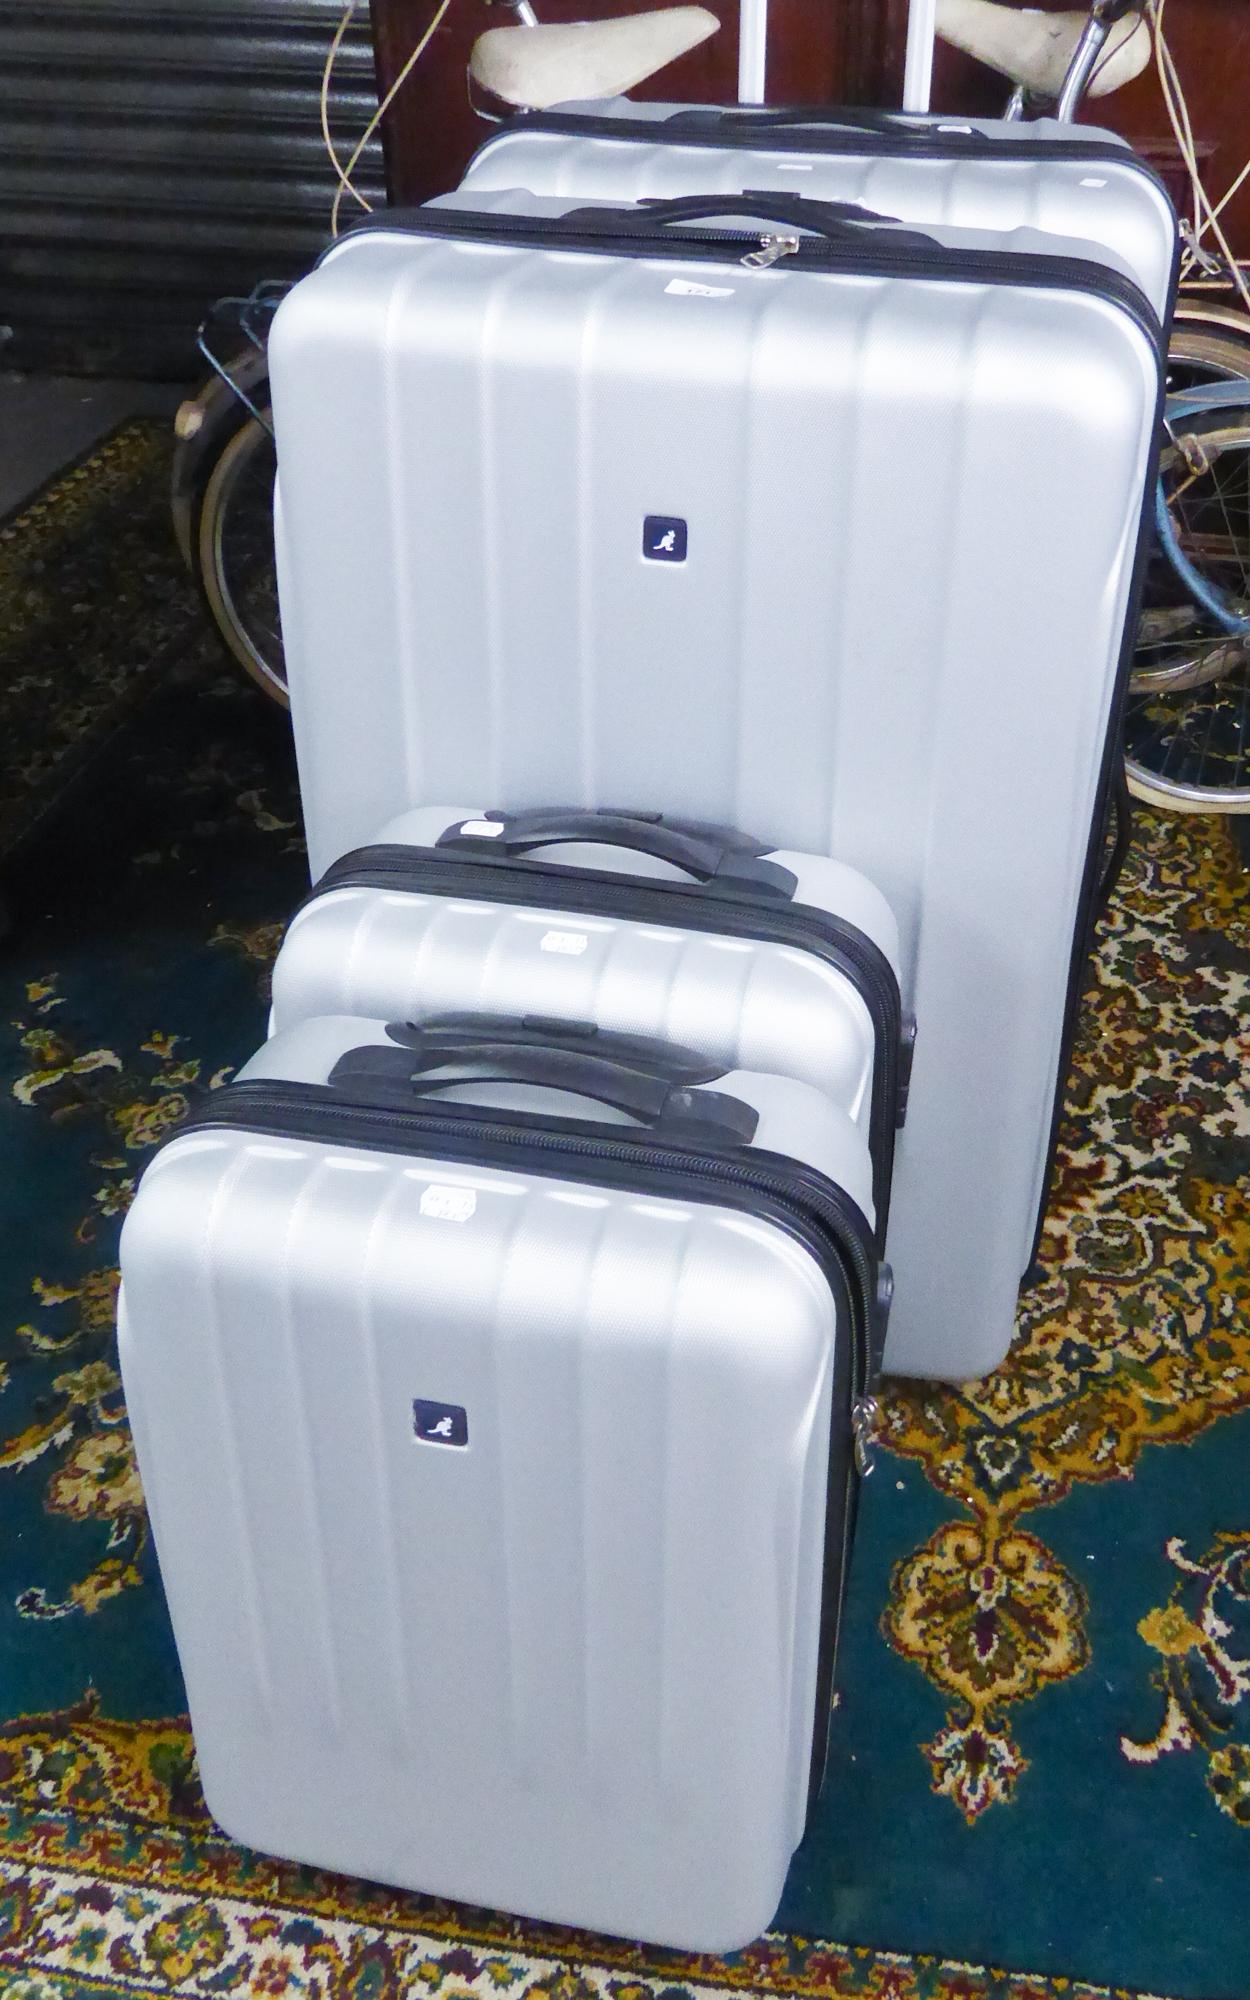 Lot 171 - TWO PAIRS OF KANGOL HARD BODIED SILVER COLOURED SUITCASES, 82cm x 55cm x 31cm and 54cm x 36cm x